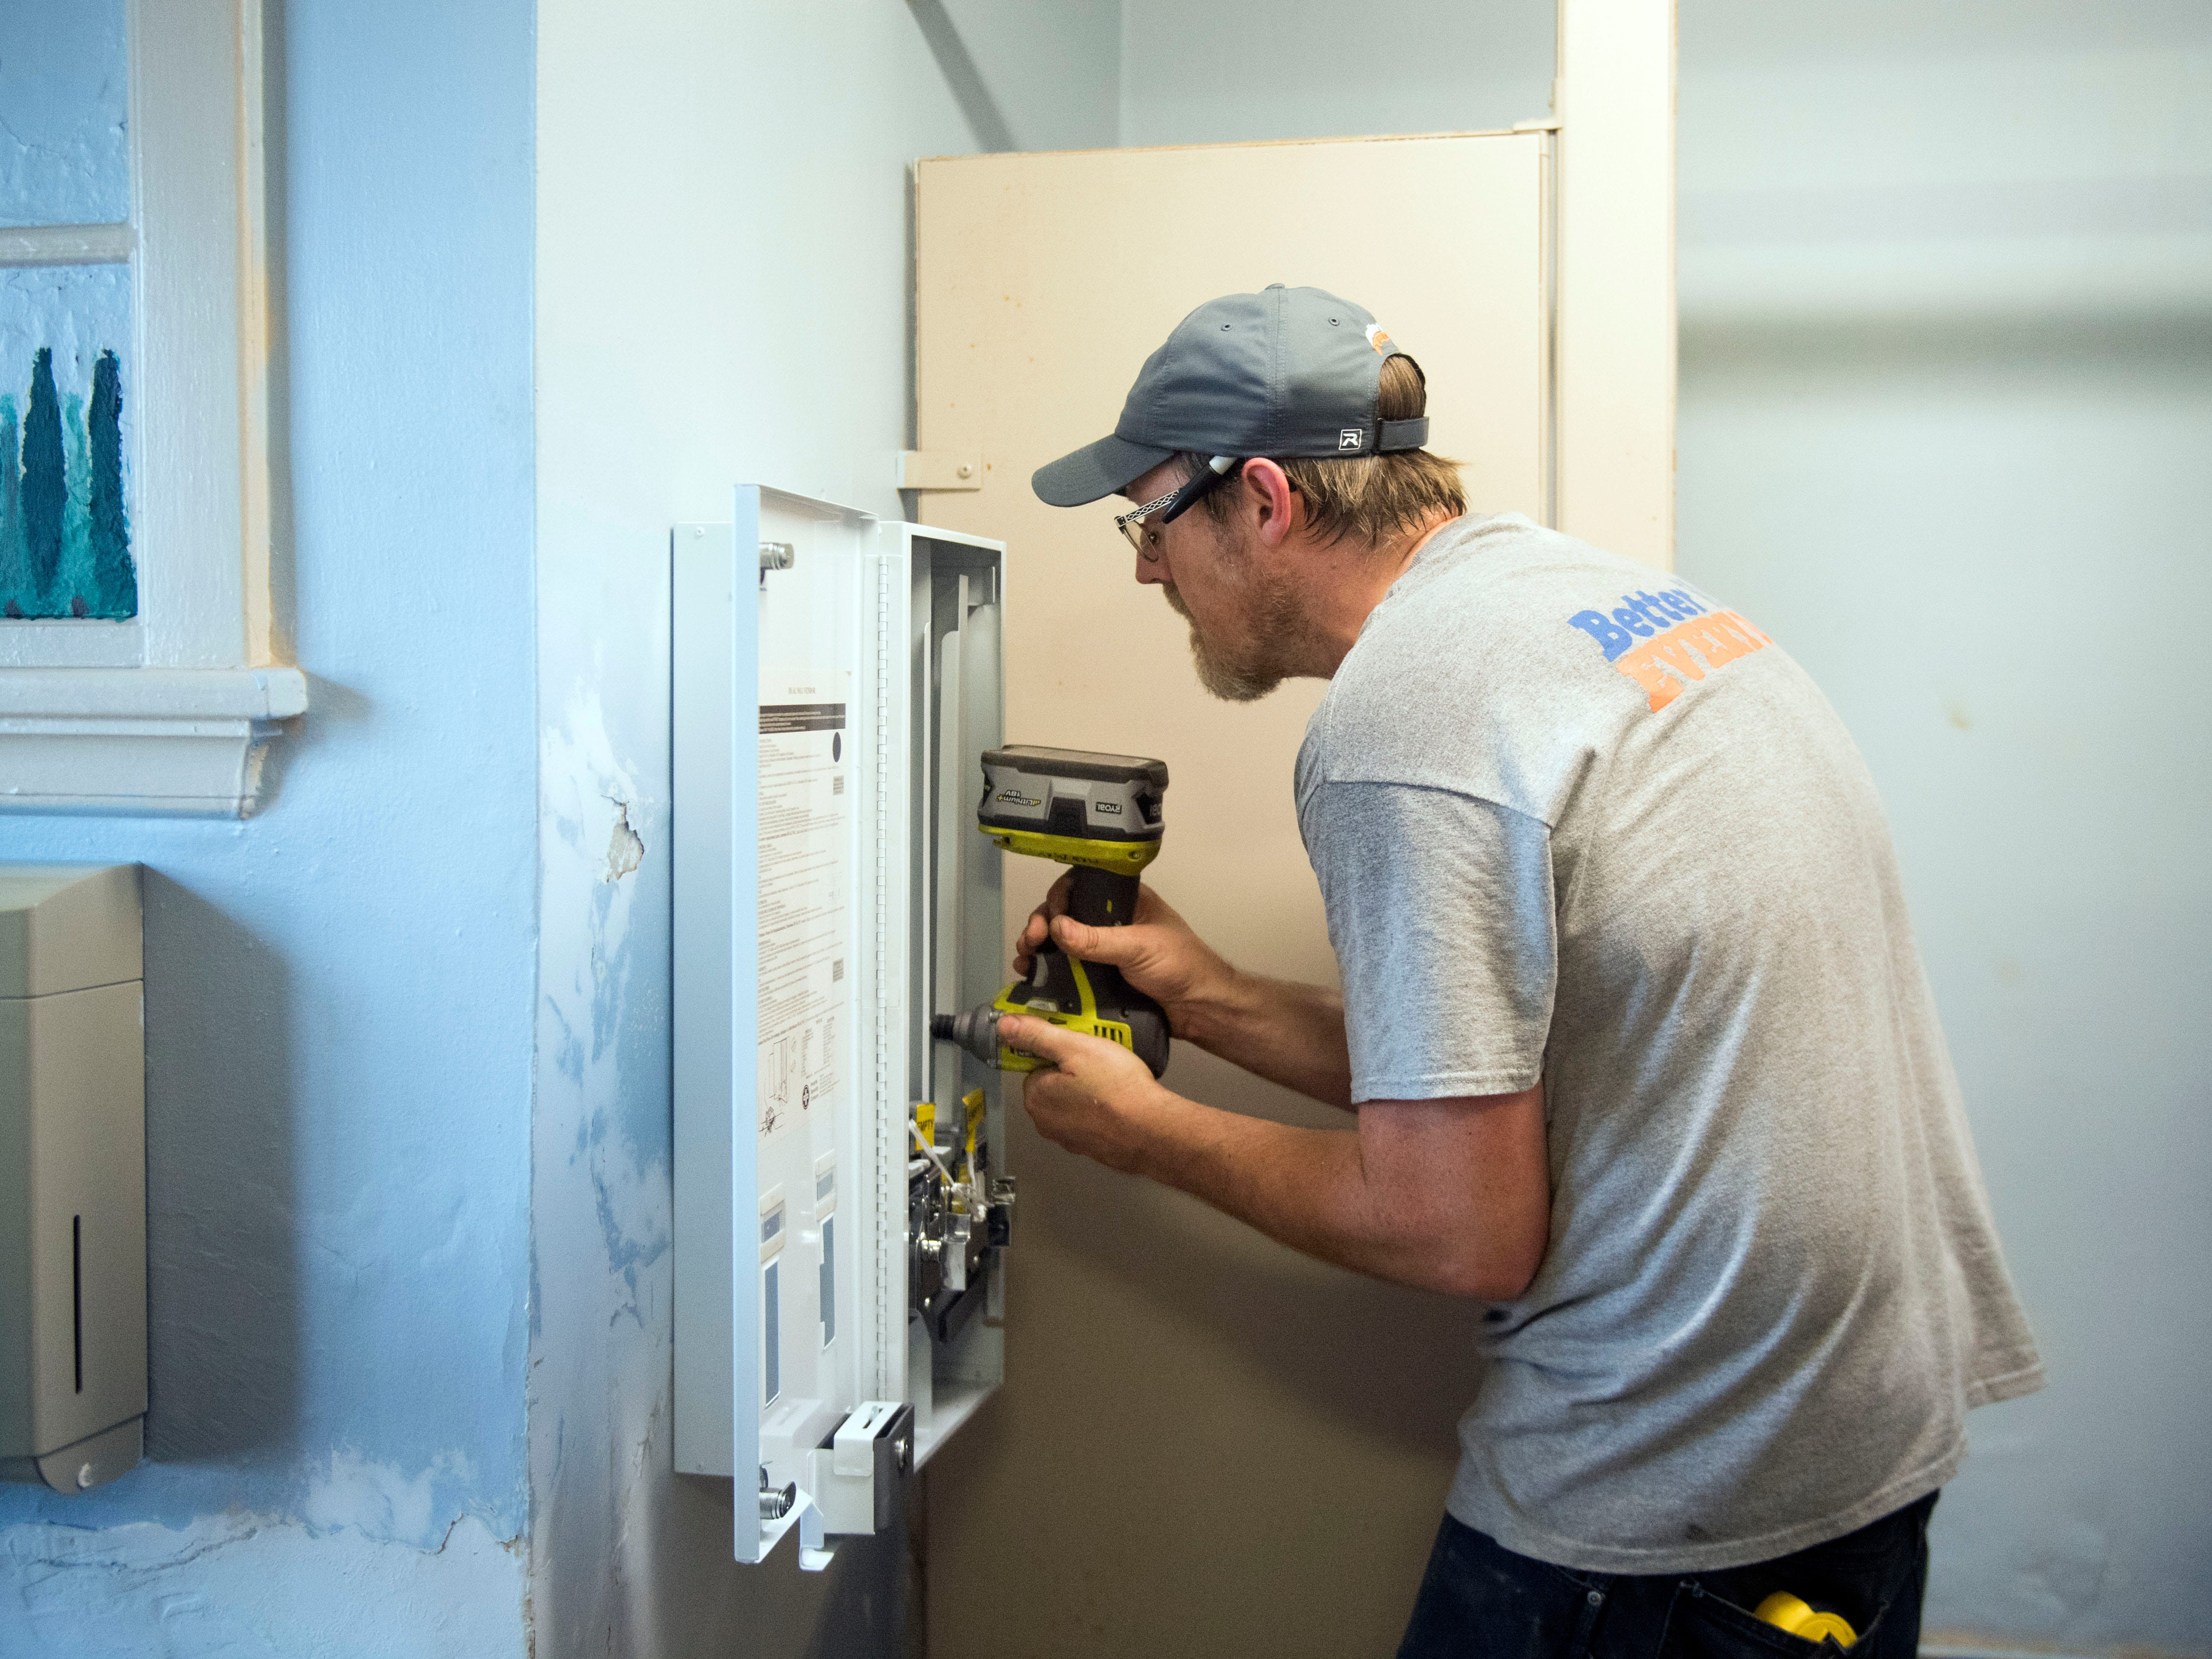 Adam Campbell of Transzonic installs a vending machine that dispenses Maxithin feminine napkins and Tampax Tampons in a bathroom at the YWCA on Wednesday, July 11, 2018. The feminine products are provided freely to residents at the YWCA by Tranzonics, which has a factory in Karns that manufactures and distributes a variety of cleaning, maintenance and personal products.